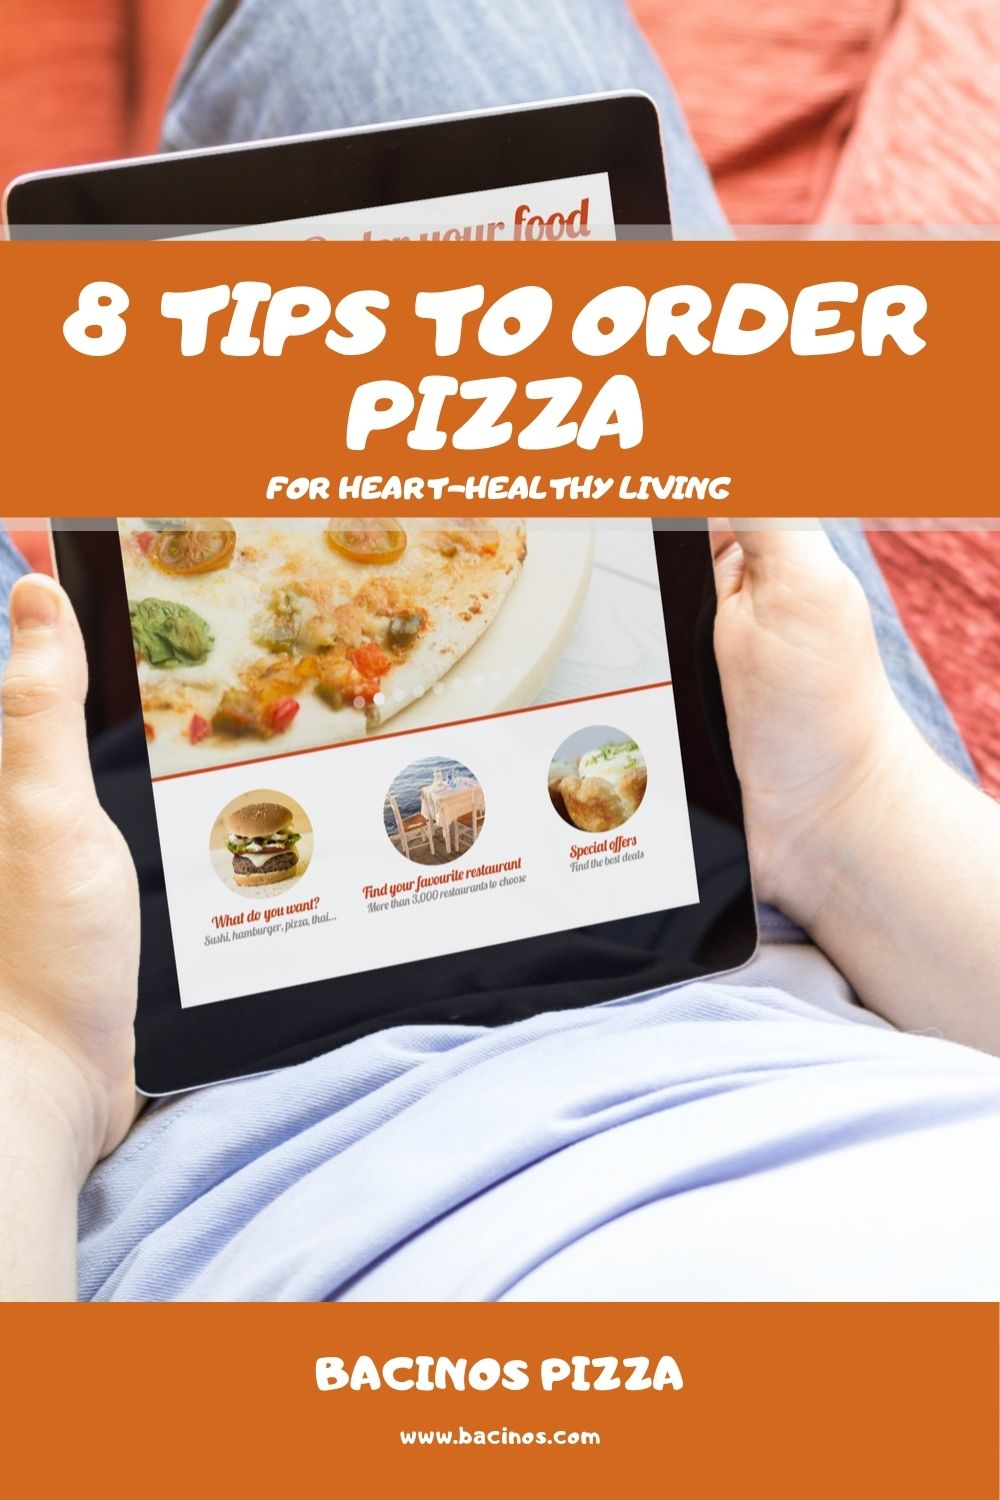 8 Tips to Order Pizza for Heart-Healthy Living 2